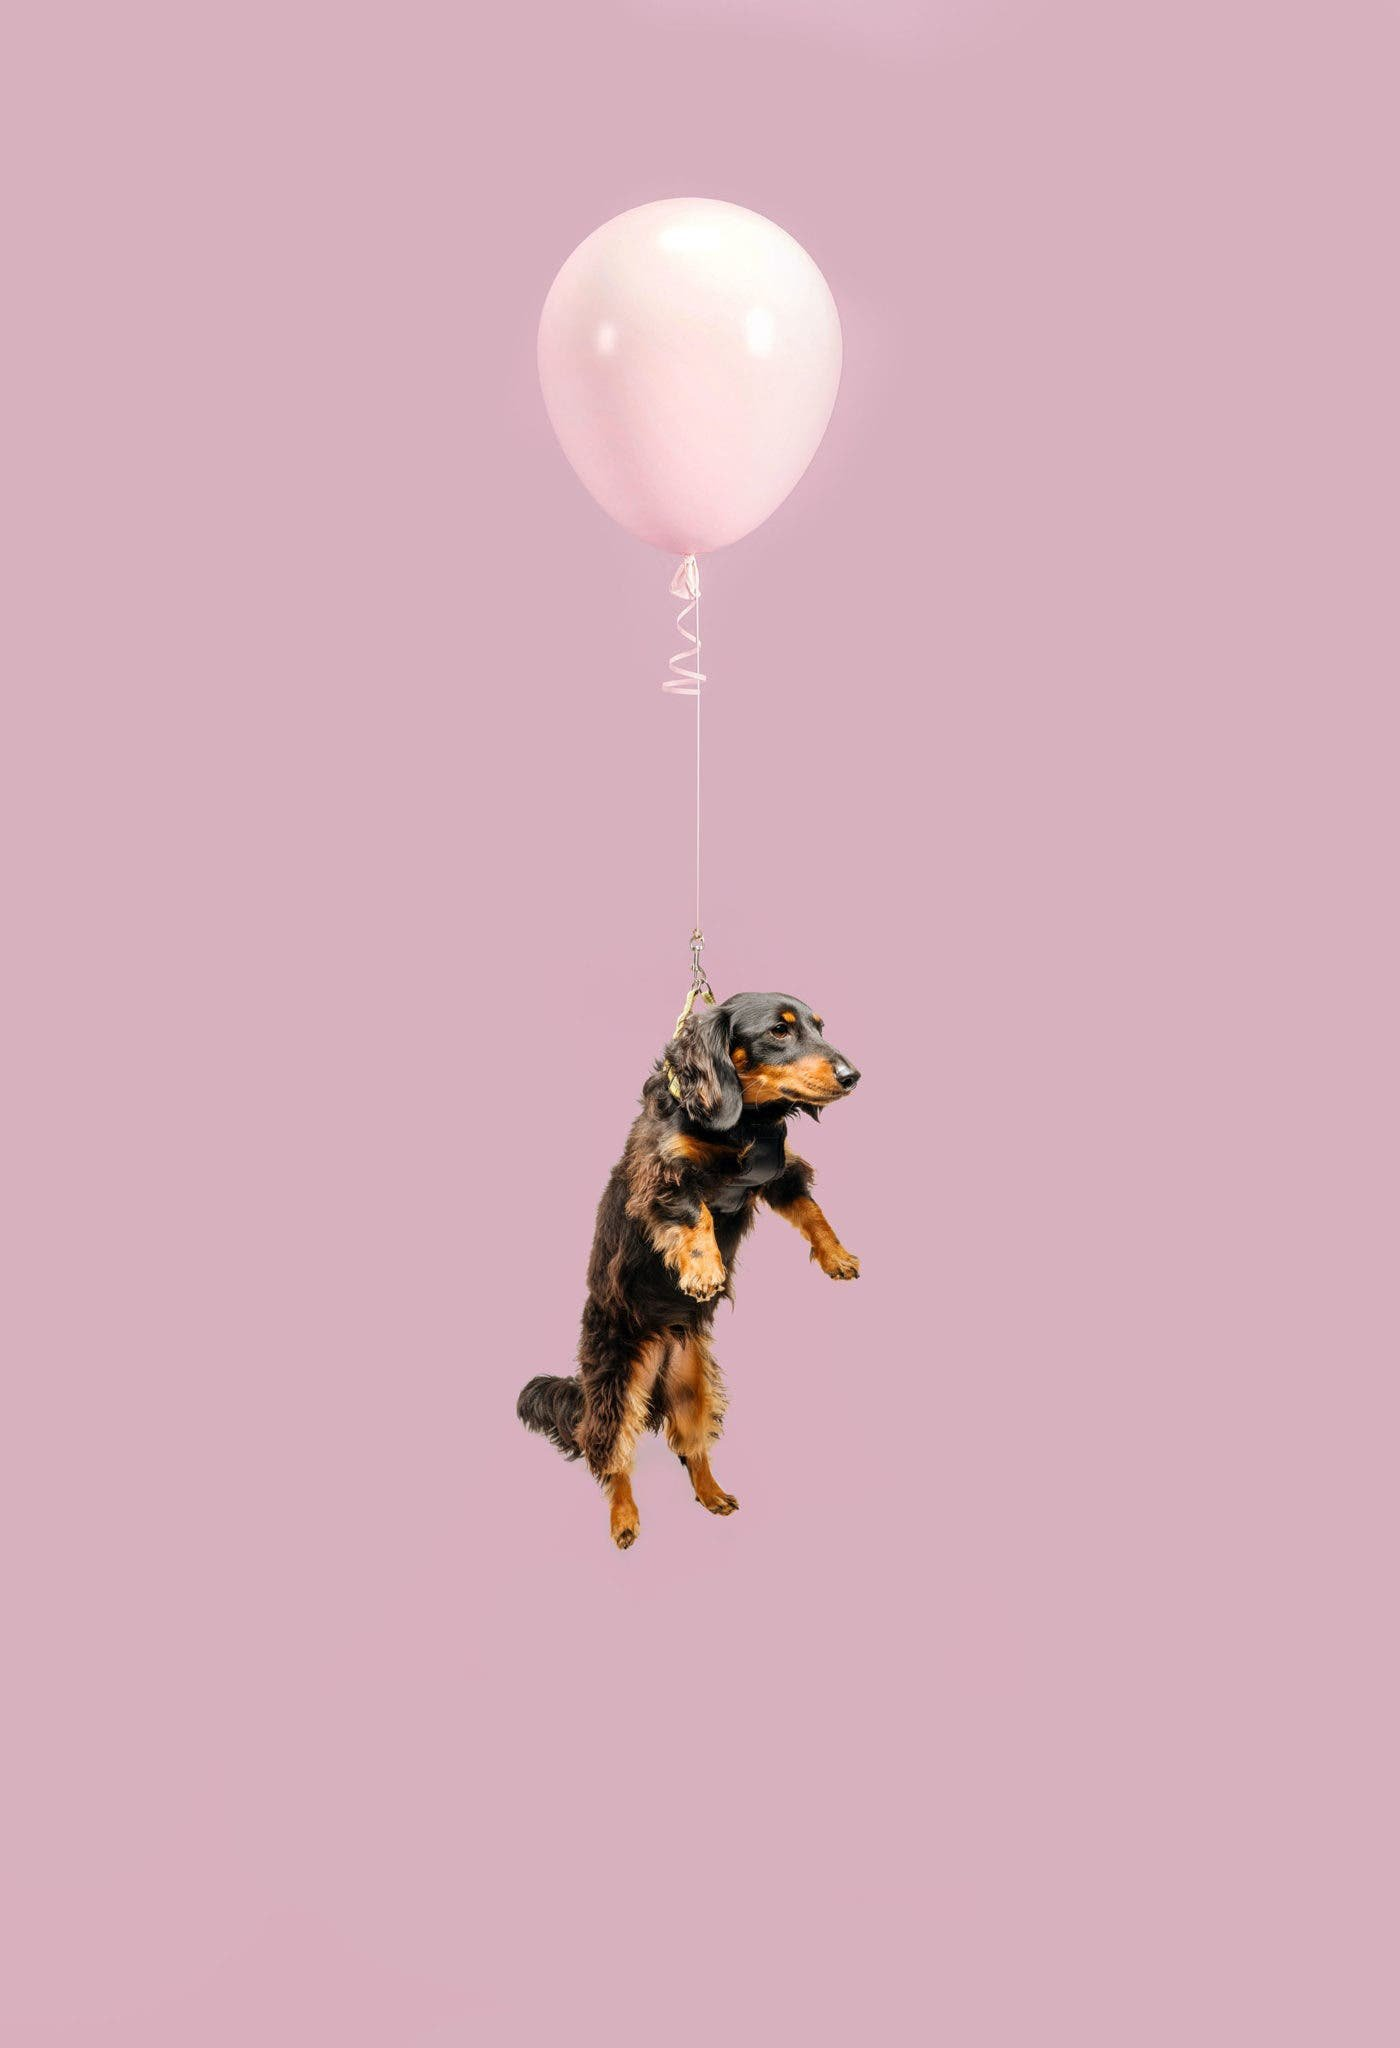 """Ian Pettigrew Aims for Smiles With His """"Floating Dogs"""" Project"""